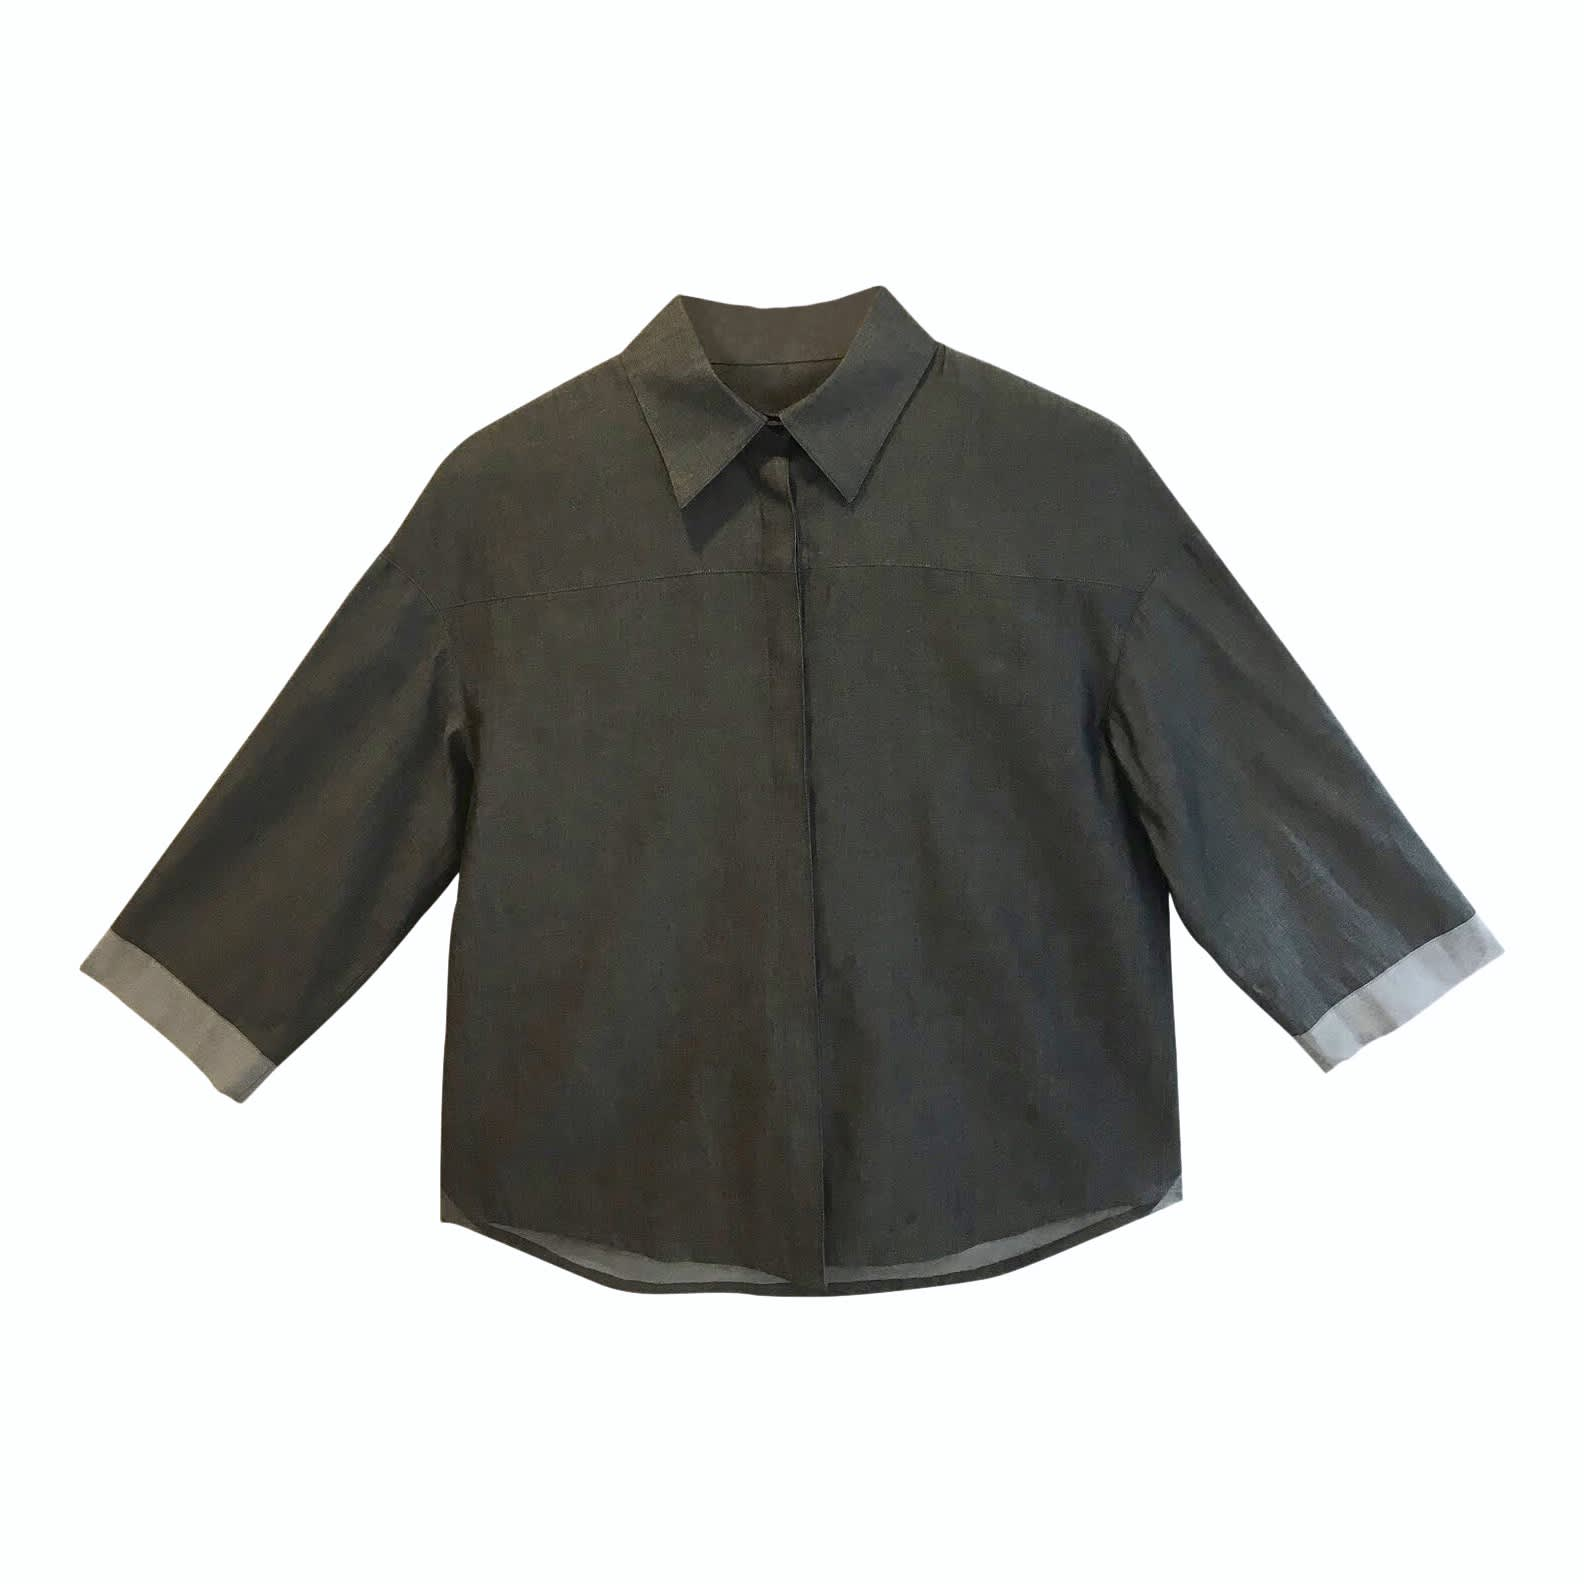 AV London Crisp Cotton Shirt